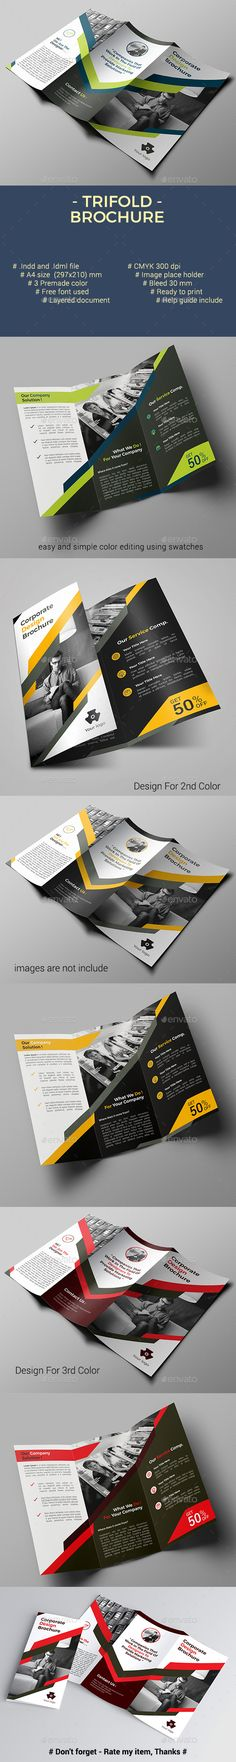 Trifold Brochure Detail trifold Brochure      indesign files (.indd and .idml)     3 premade color     Size A4     CMYK Color Mode     Full layered (graphic image and text)     300 DPI Resolution